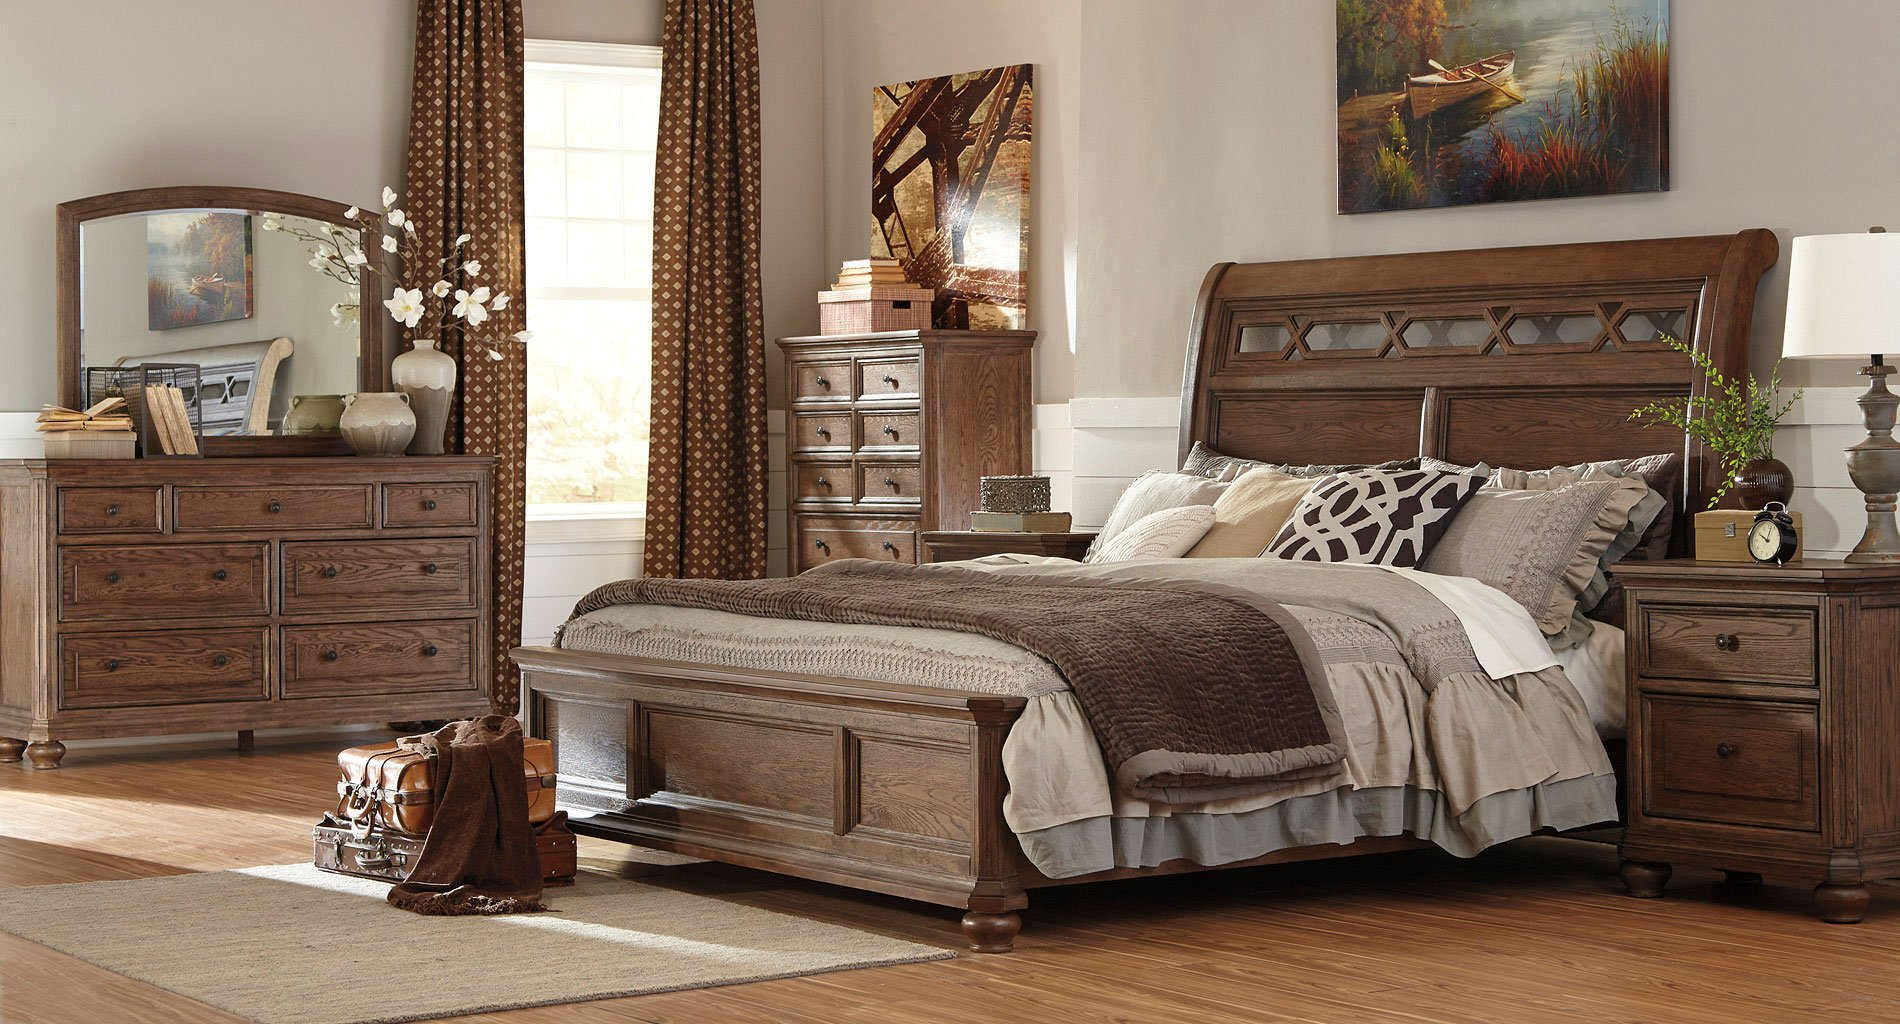 Maeleen Sleigh Bedroom Set By Signature Design By Ashley